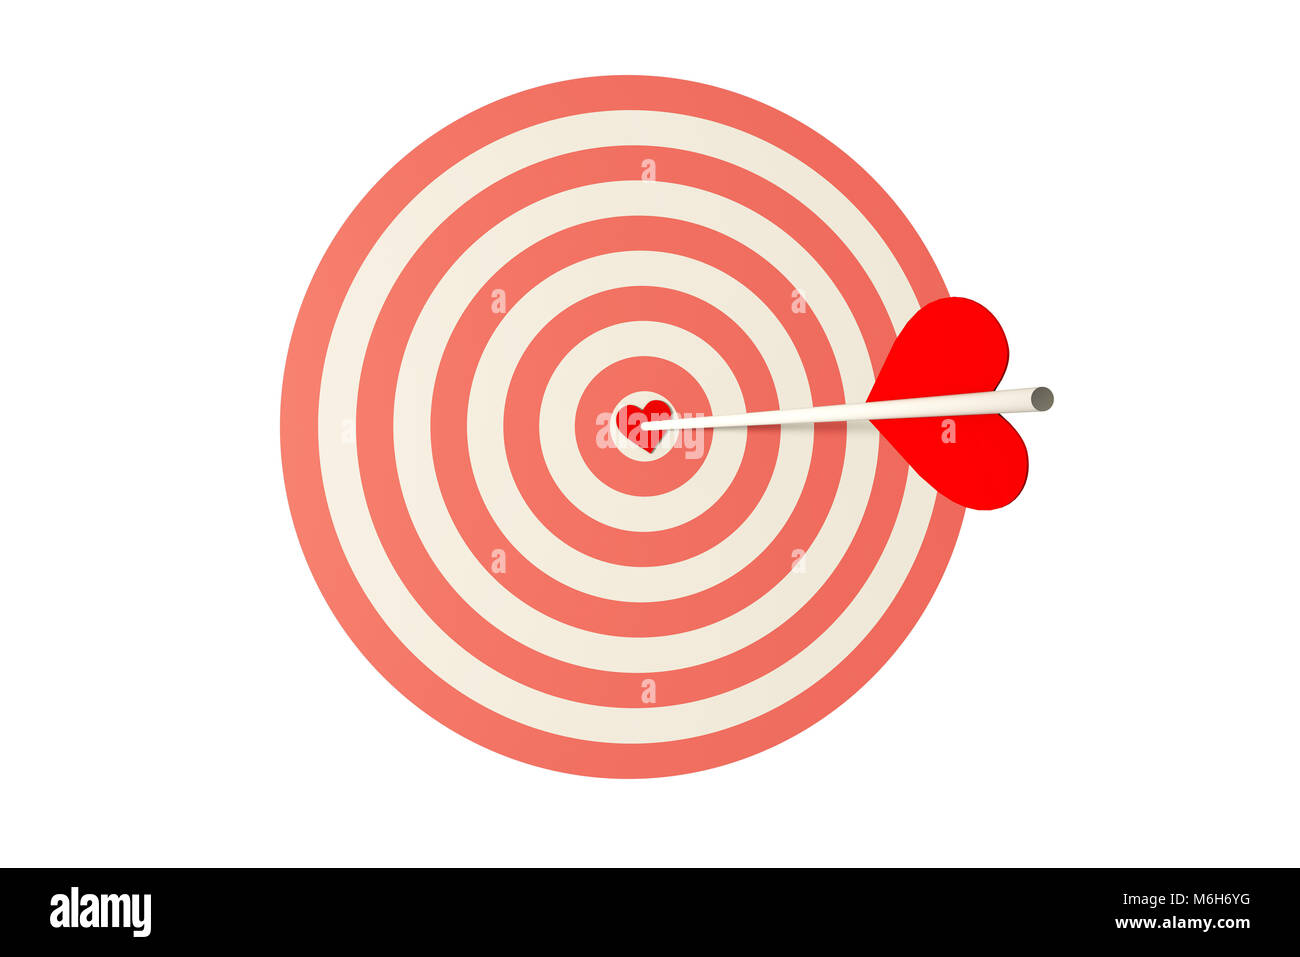 Bullseye archery cut out stock images pictures alamy heart bow currency symbol and red heart stock image altavistaventures Images